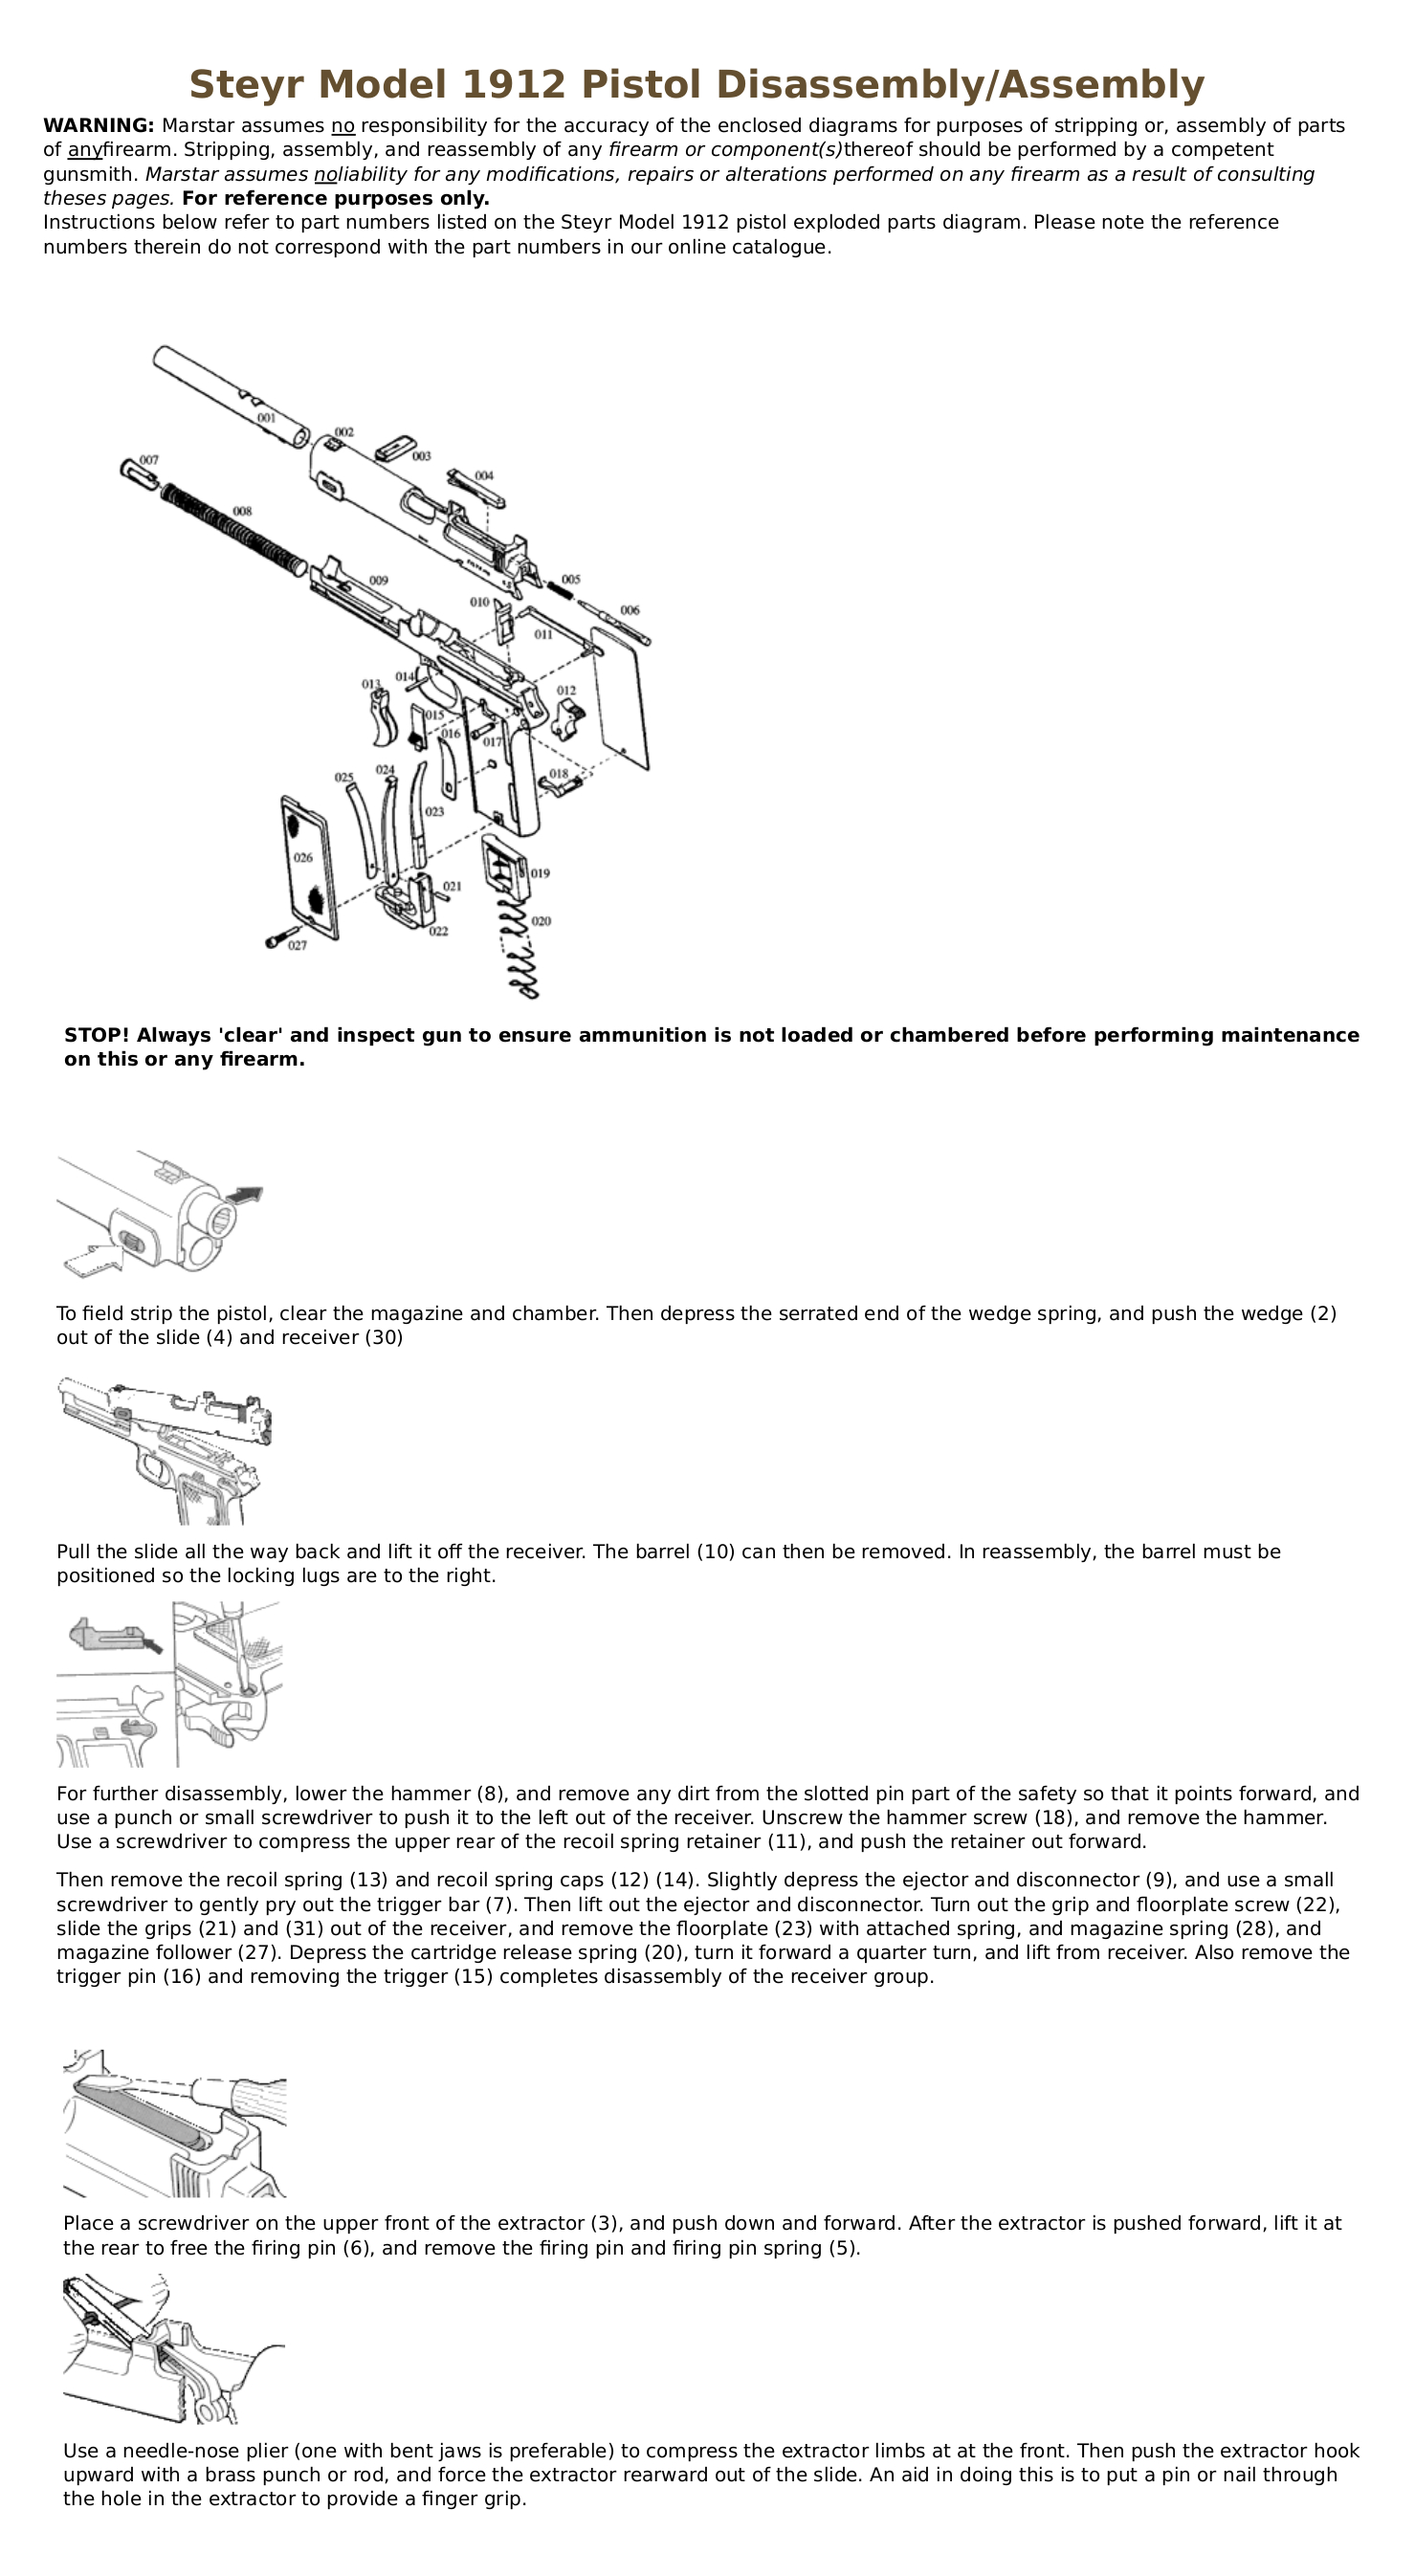 Steyr Model 1912 stripping instructions